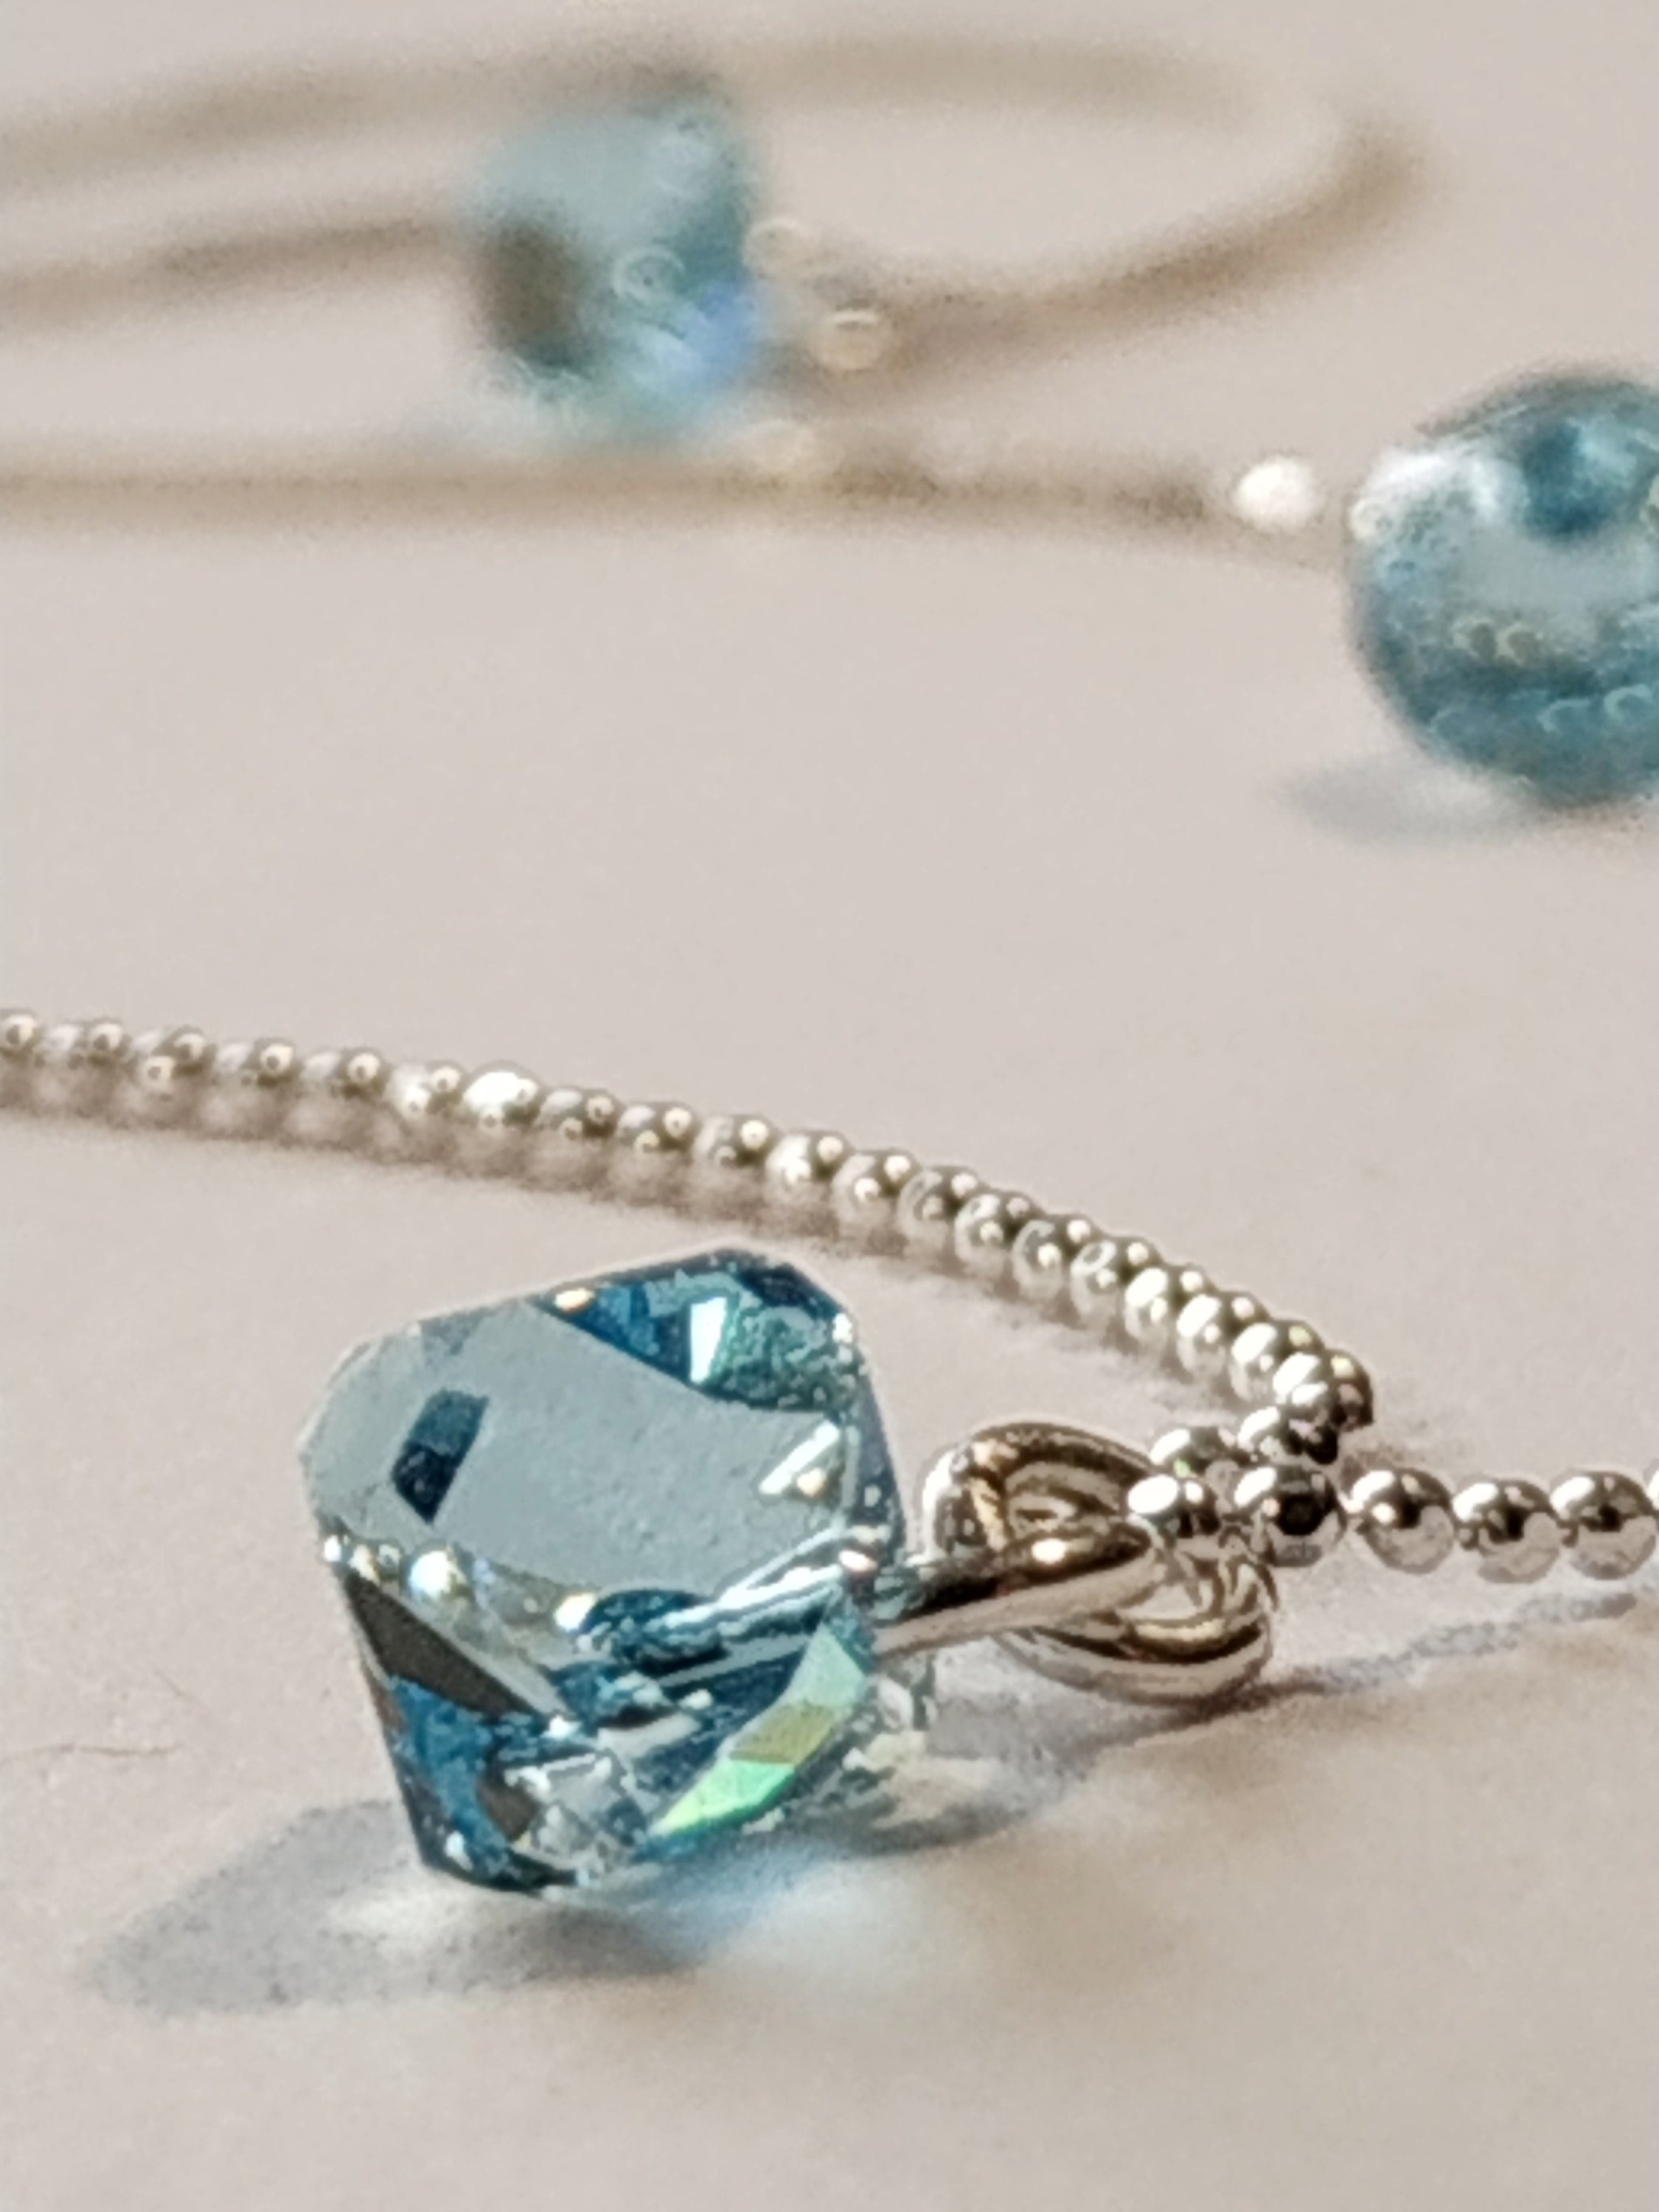 https://josefacreations.com/products/collier-chaine-argent-925-cristal-swarovski-aquamarine.jpg